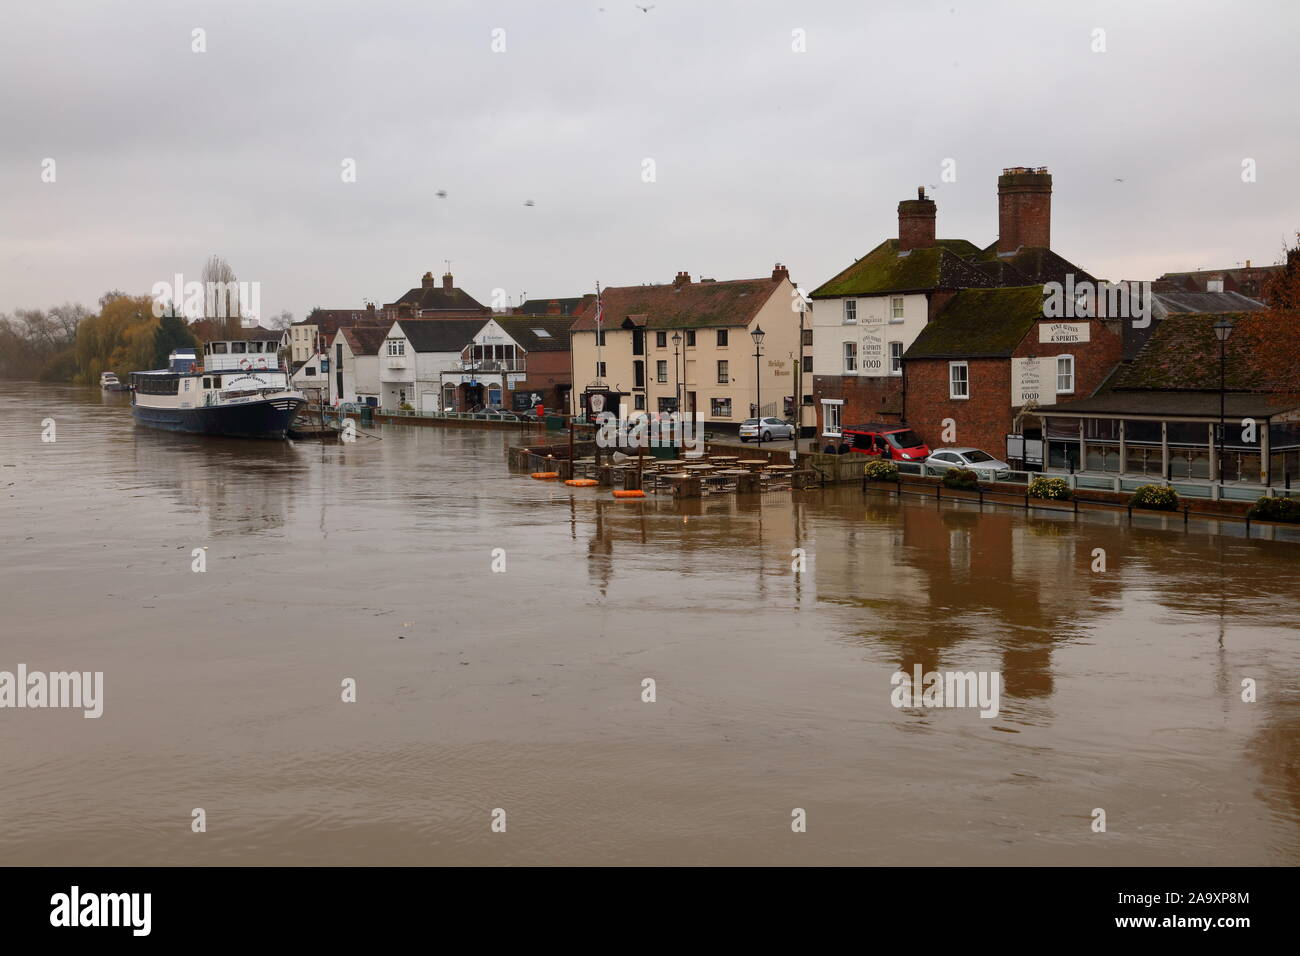 As the rains keep falling the barriers at Upton guarding the village from the Severn flood waters stand their ground despite the increasing waters. Stock Photo